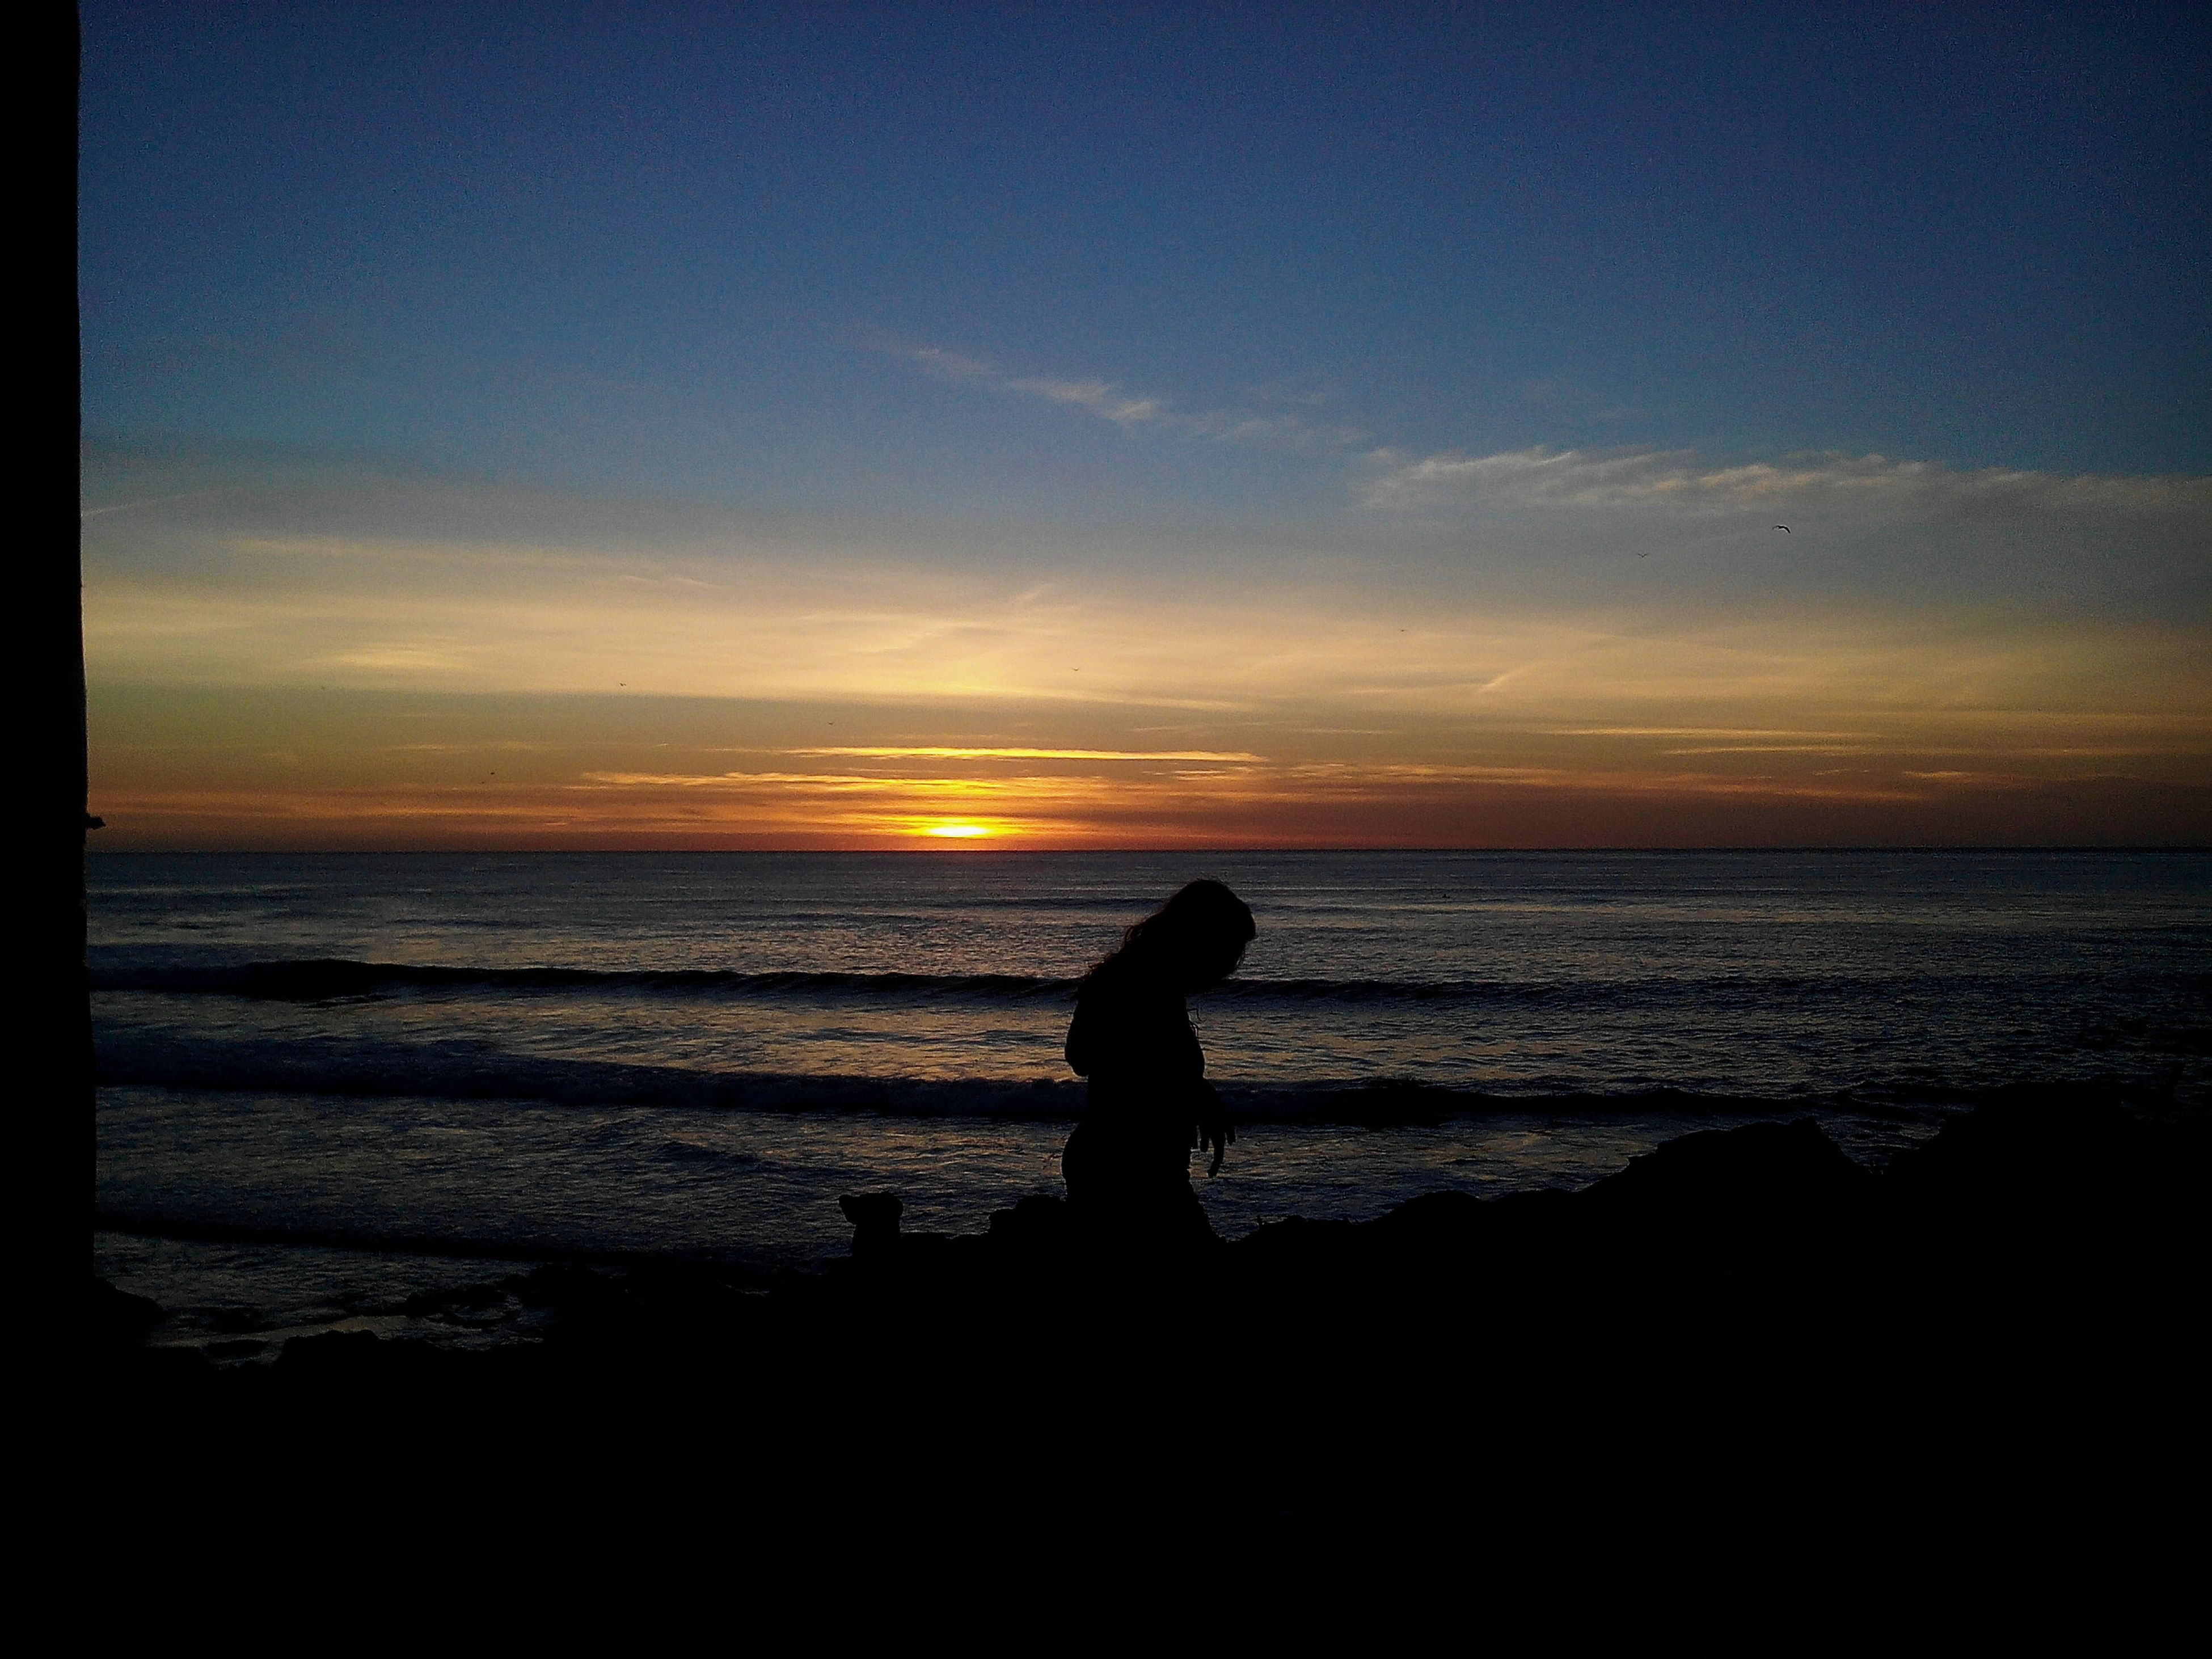 sunset, silhouette, sea, scenics, beauty in nature, tranquil scene, water, tranquility, orange color, sky, horizon over water, beach, standing, idyllic, shore, nature, men, outline